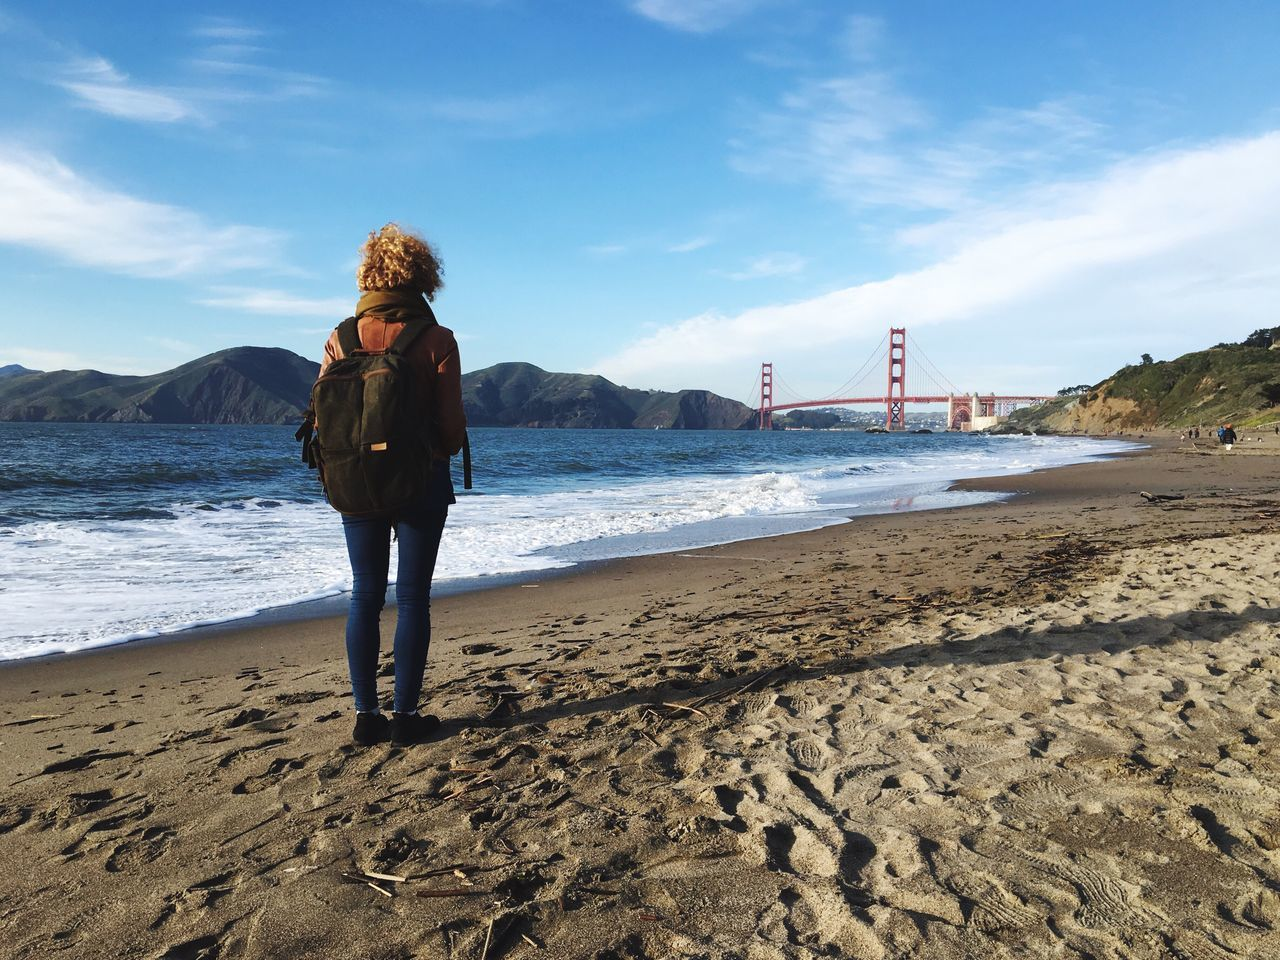 Iphonephotography IPhone Photography IPhoneography Golden Gate Bridge Beach Full Length Real People One Person Sky Sea Leisure Activity Day Sand Standing Outdoors Water Nature Scenics Beauty In Nature